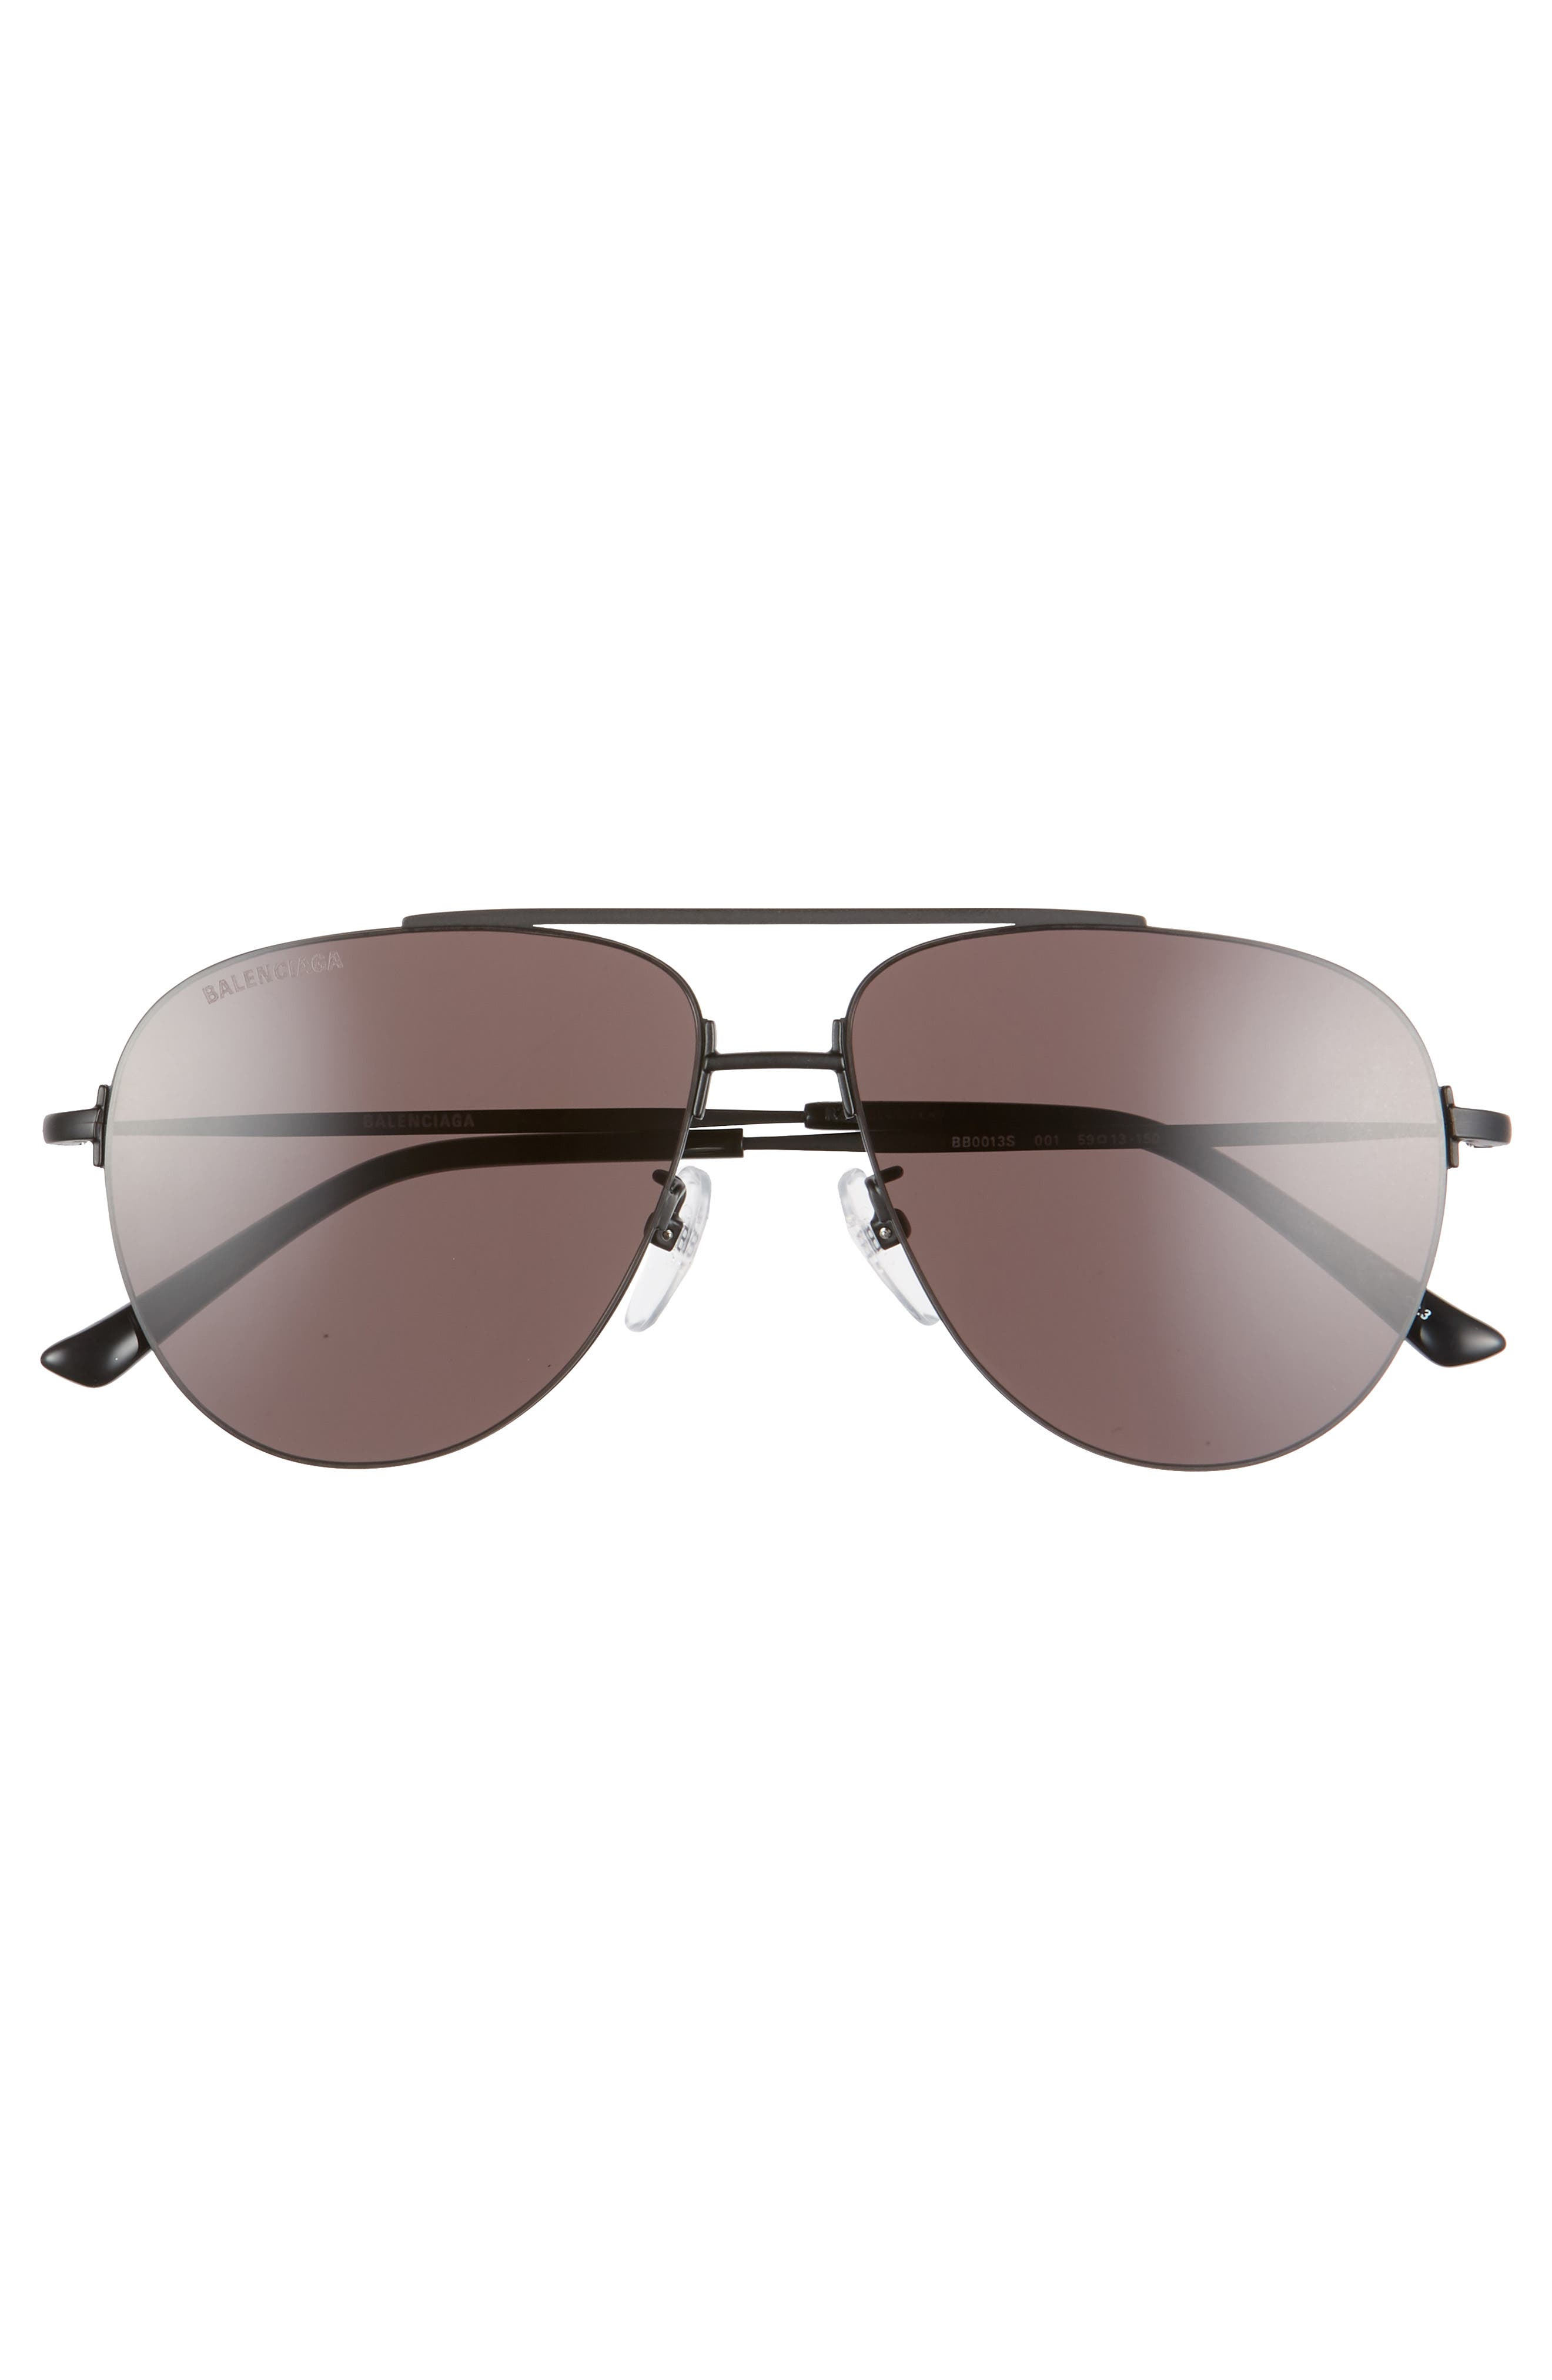 BALENCIAGA, 59mm Aviator Sunglasses, Alternate thumbnail 3, color, SEMI-MATTE BLACK/ GREY